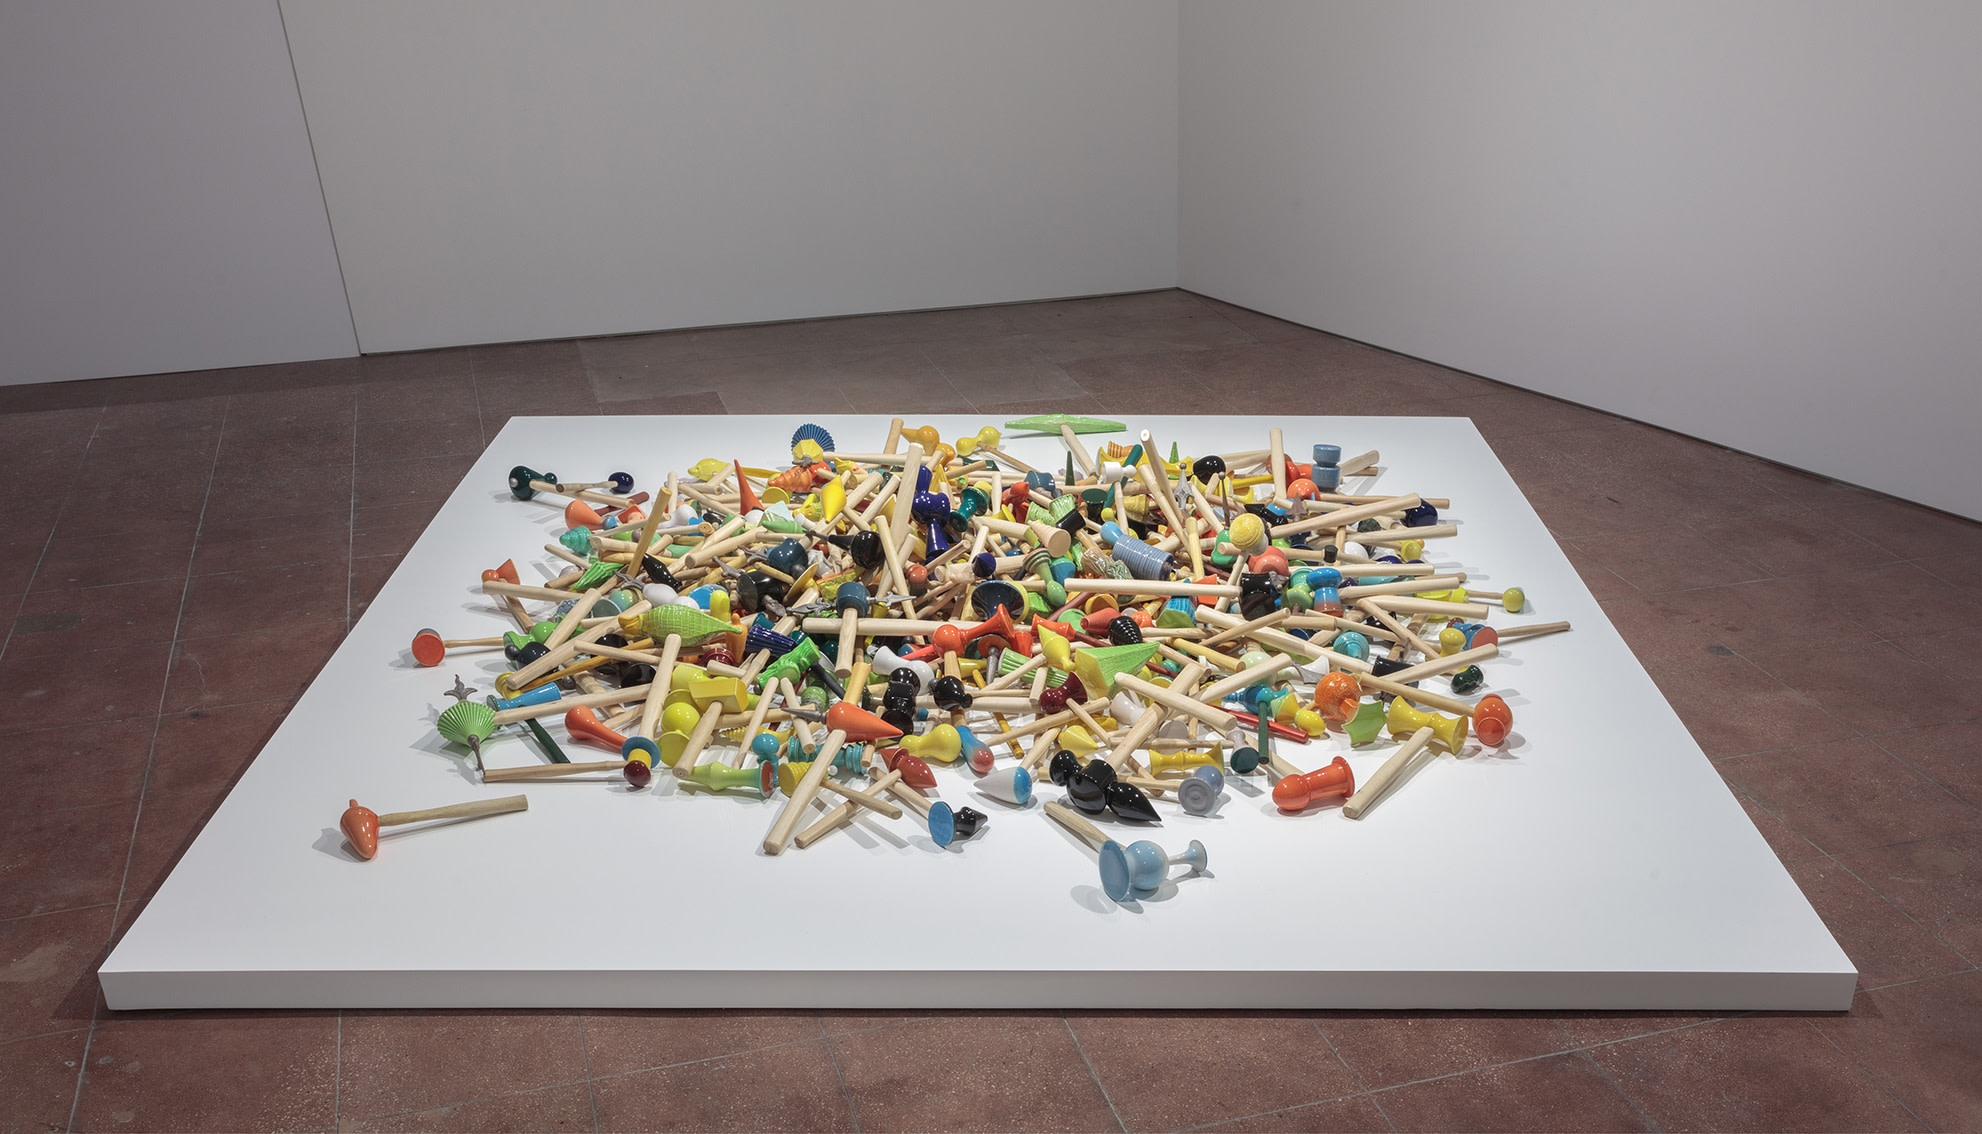 Installation view of Richard Slee, Perfect Pie, at Hales New York